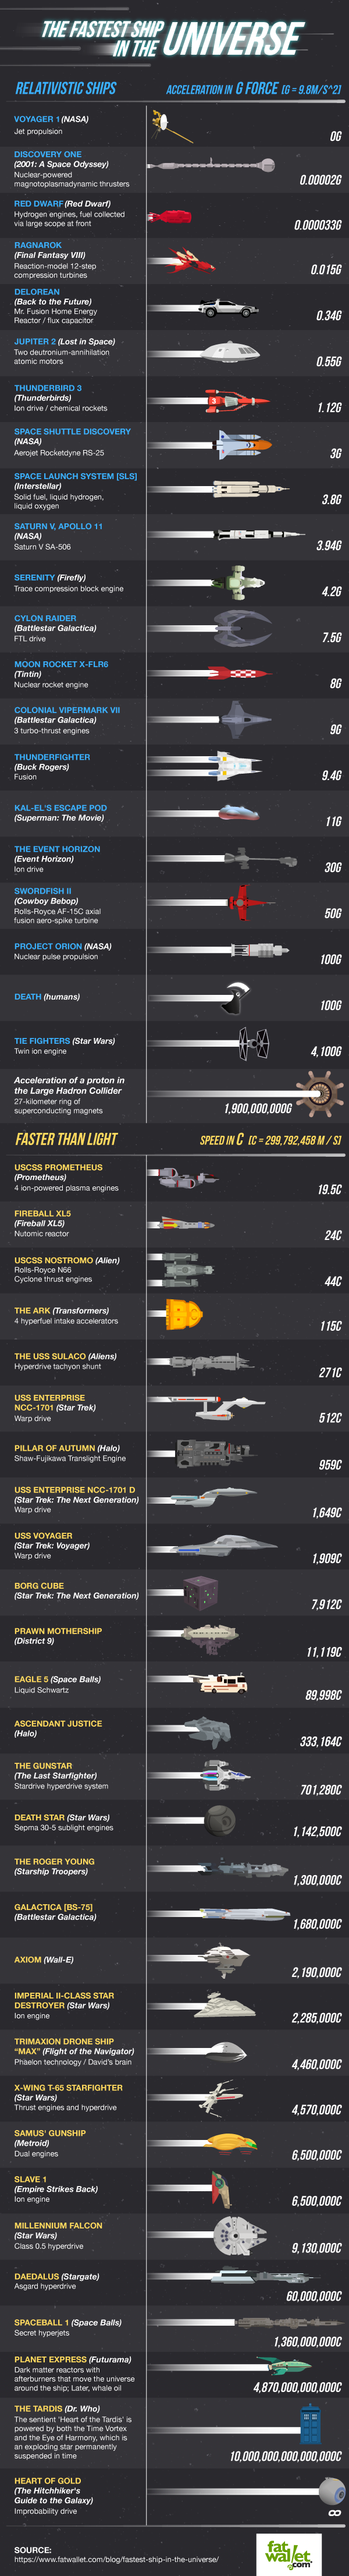 whats-the-fastest-ship-in-sci-fi-history-this-infographic-will-tell-you